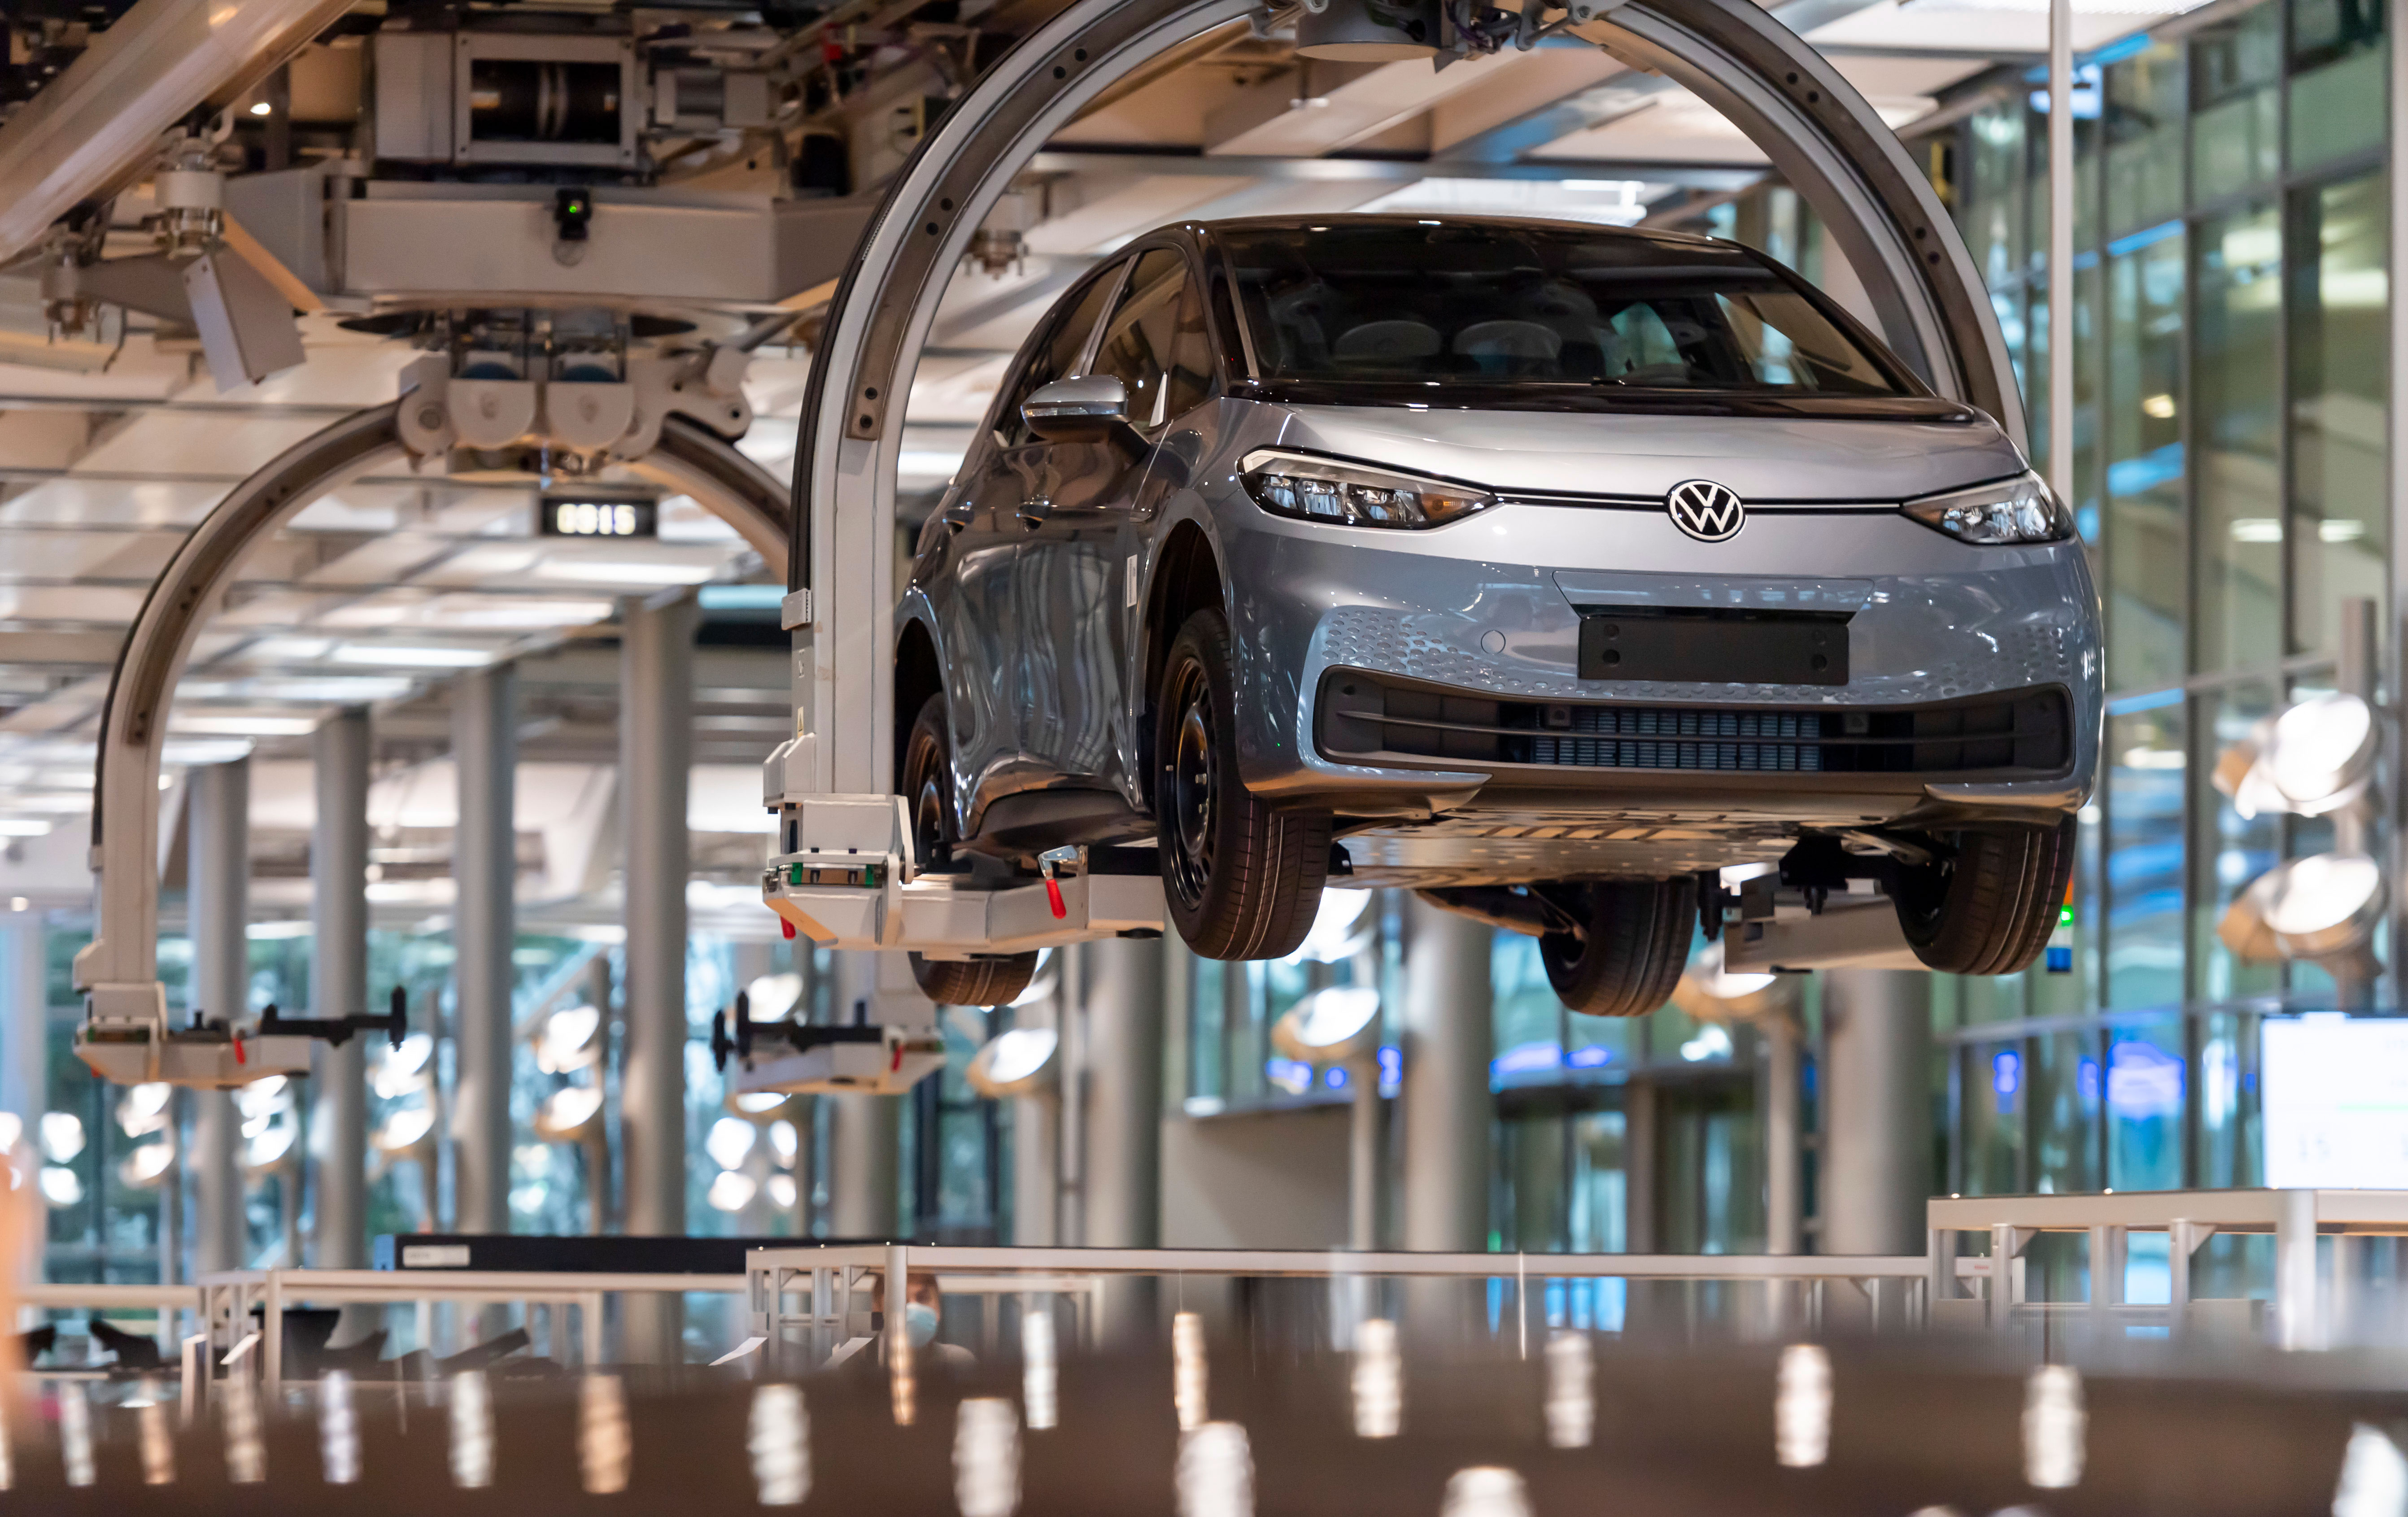 A Volkswagen ID.3 moves along an assembly line in Dresden, Germany, on January 29.